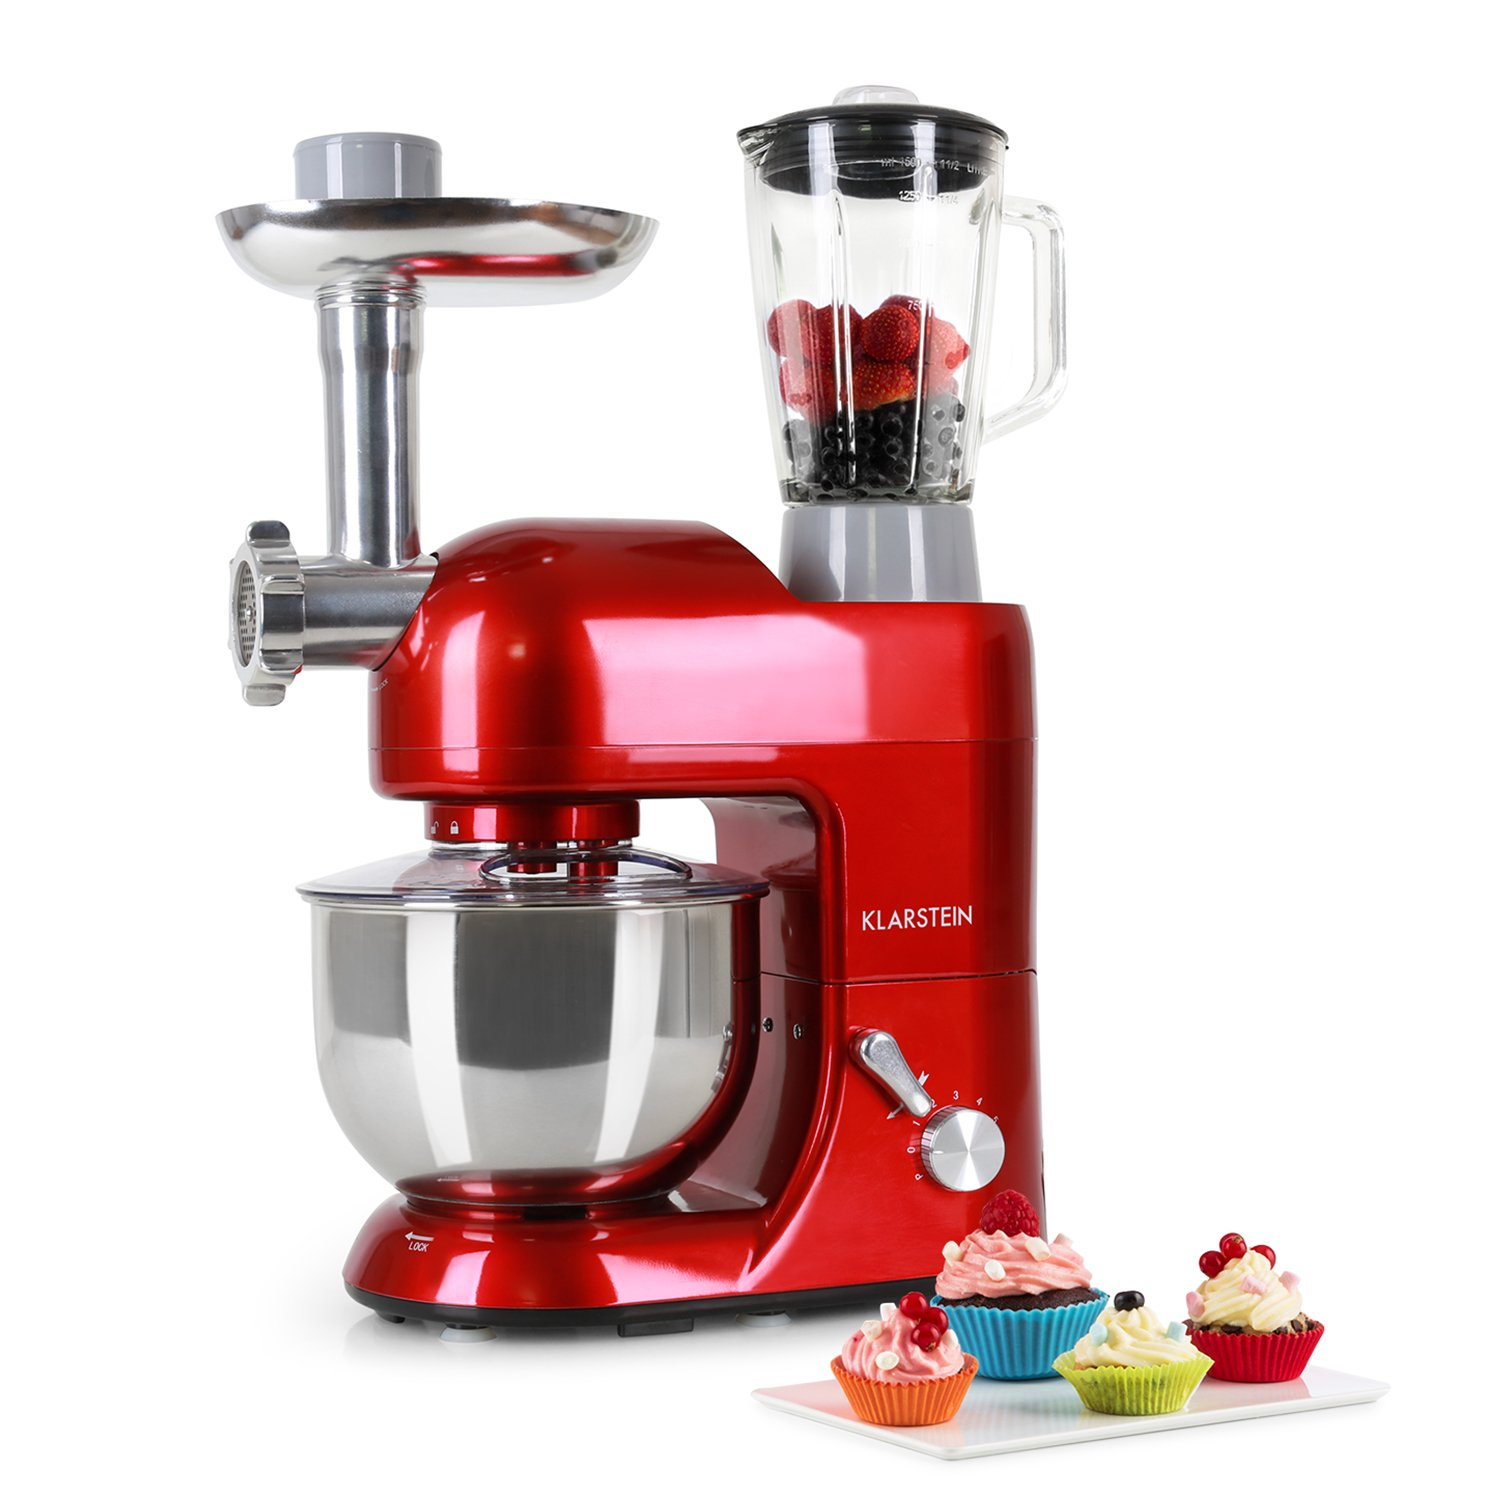 KLARSTEIN Lucia Rossa • Multifunction Stand Mixer • Kitchen Machine • 650 Watts • 5.3 qt Bowl • 1.3 qt Mixing Glass • Meat Grinder • Pasta Maker • Blender • Adjustable Speed • Red